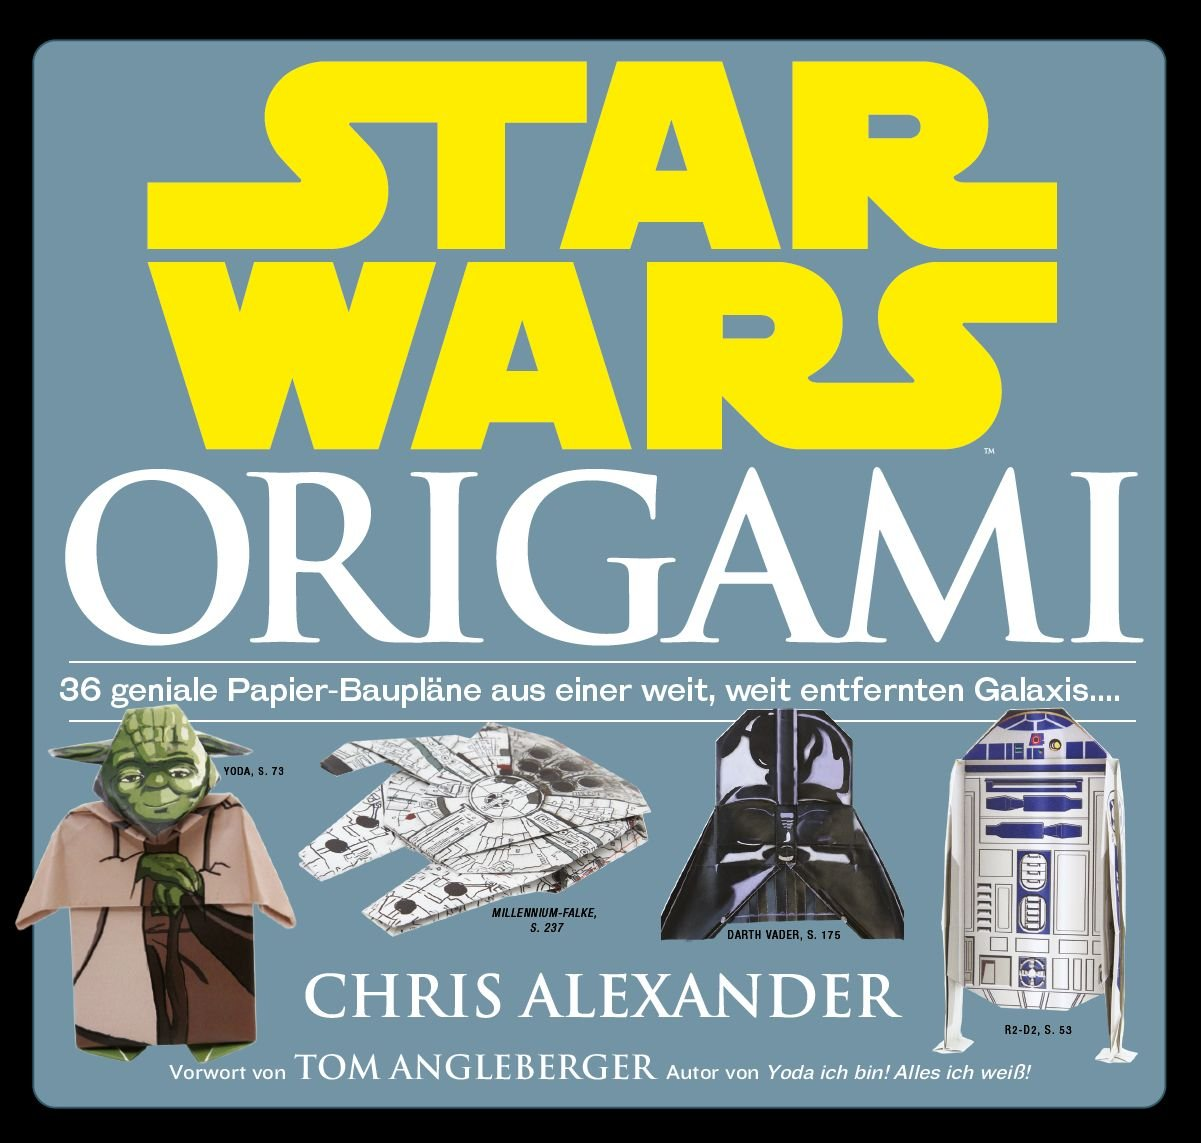 Star Wars origami -- Simple origami Jedi Starfighter | Star wars ... | 1143x1201